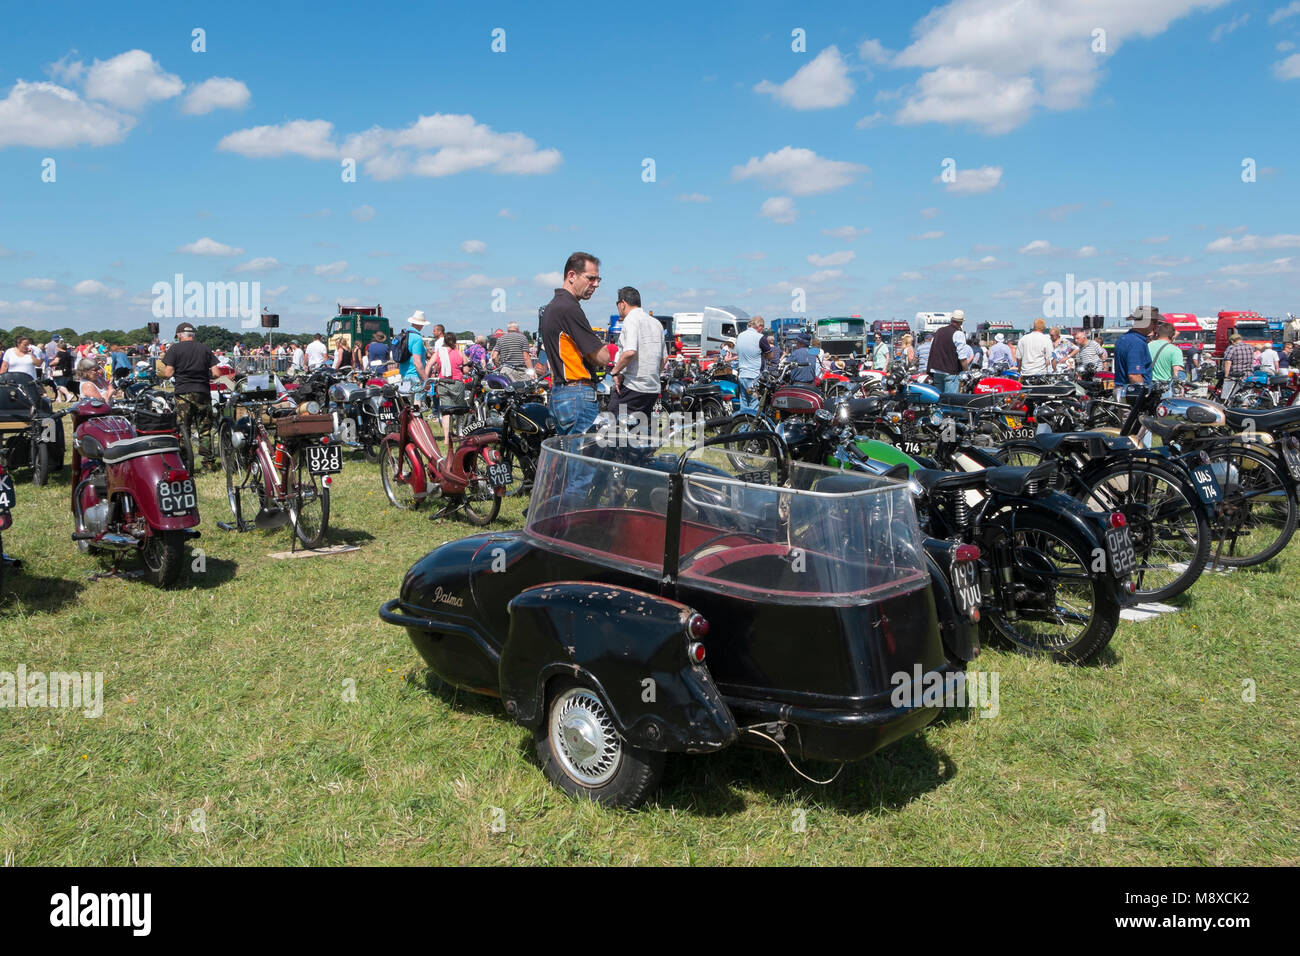 People looking at the old, vintage motorbikes with sidecars at the Gloucestershire Vintage Country Show in Cirencester Stock Photo